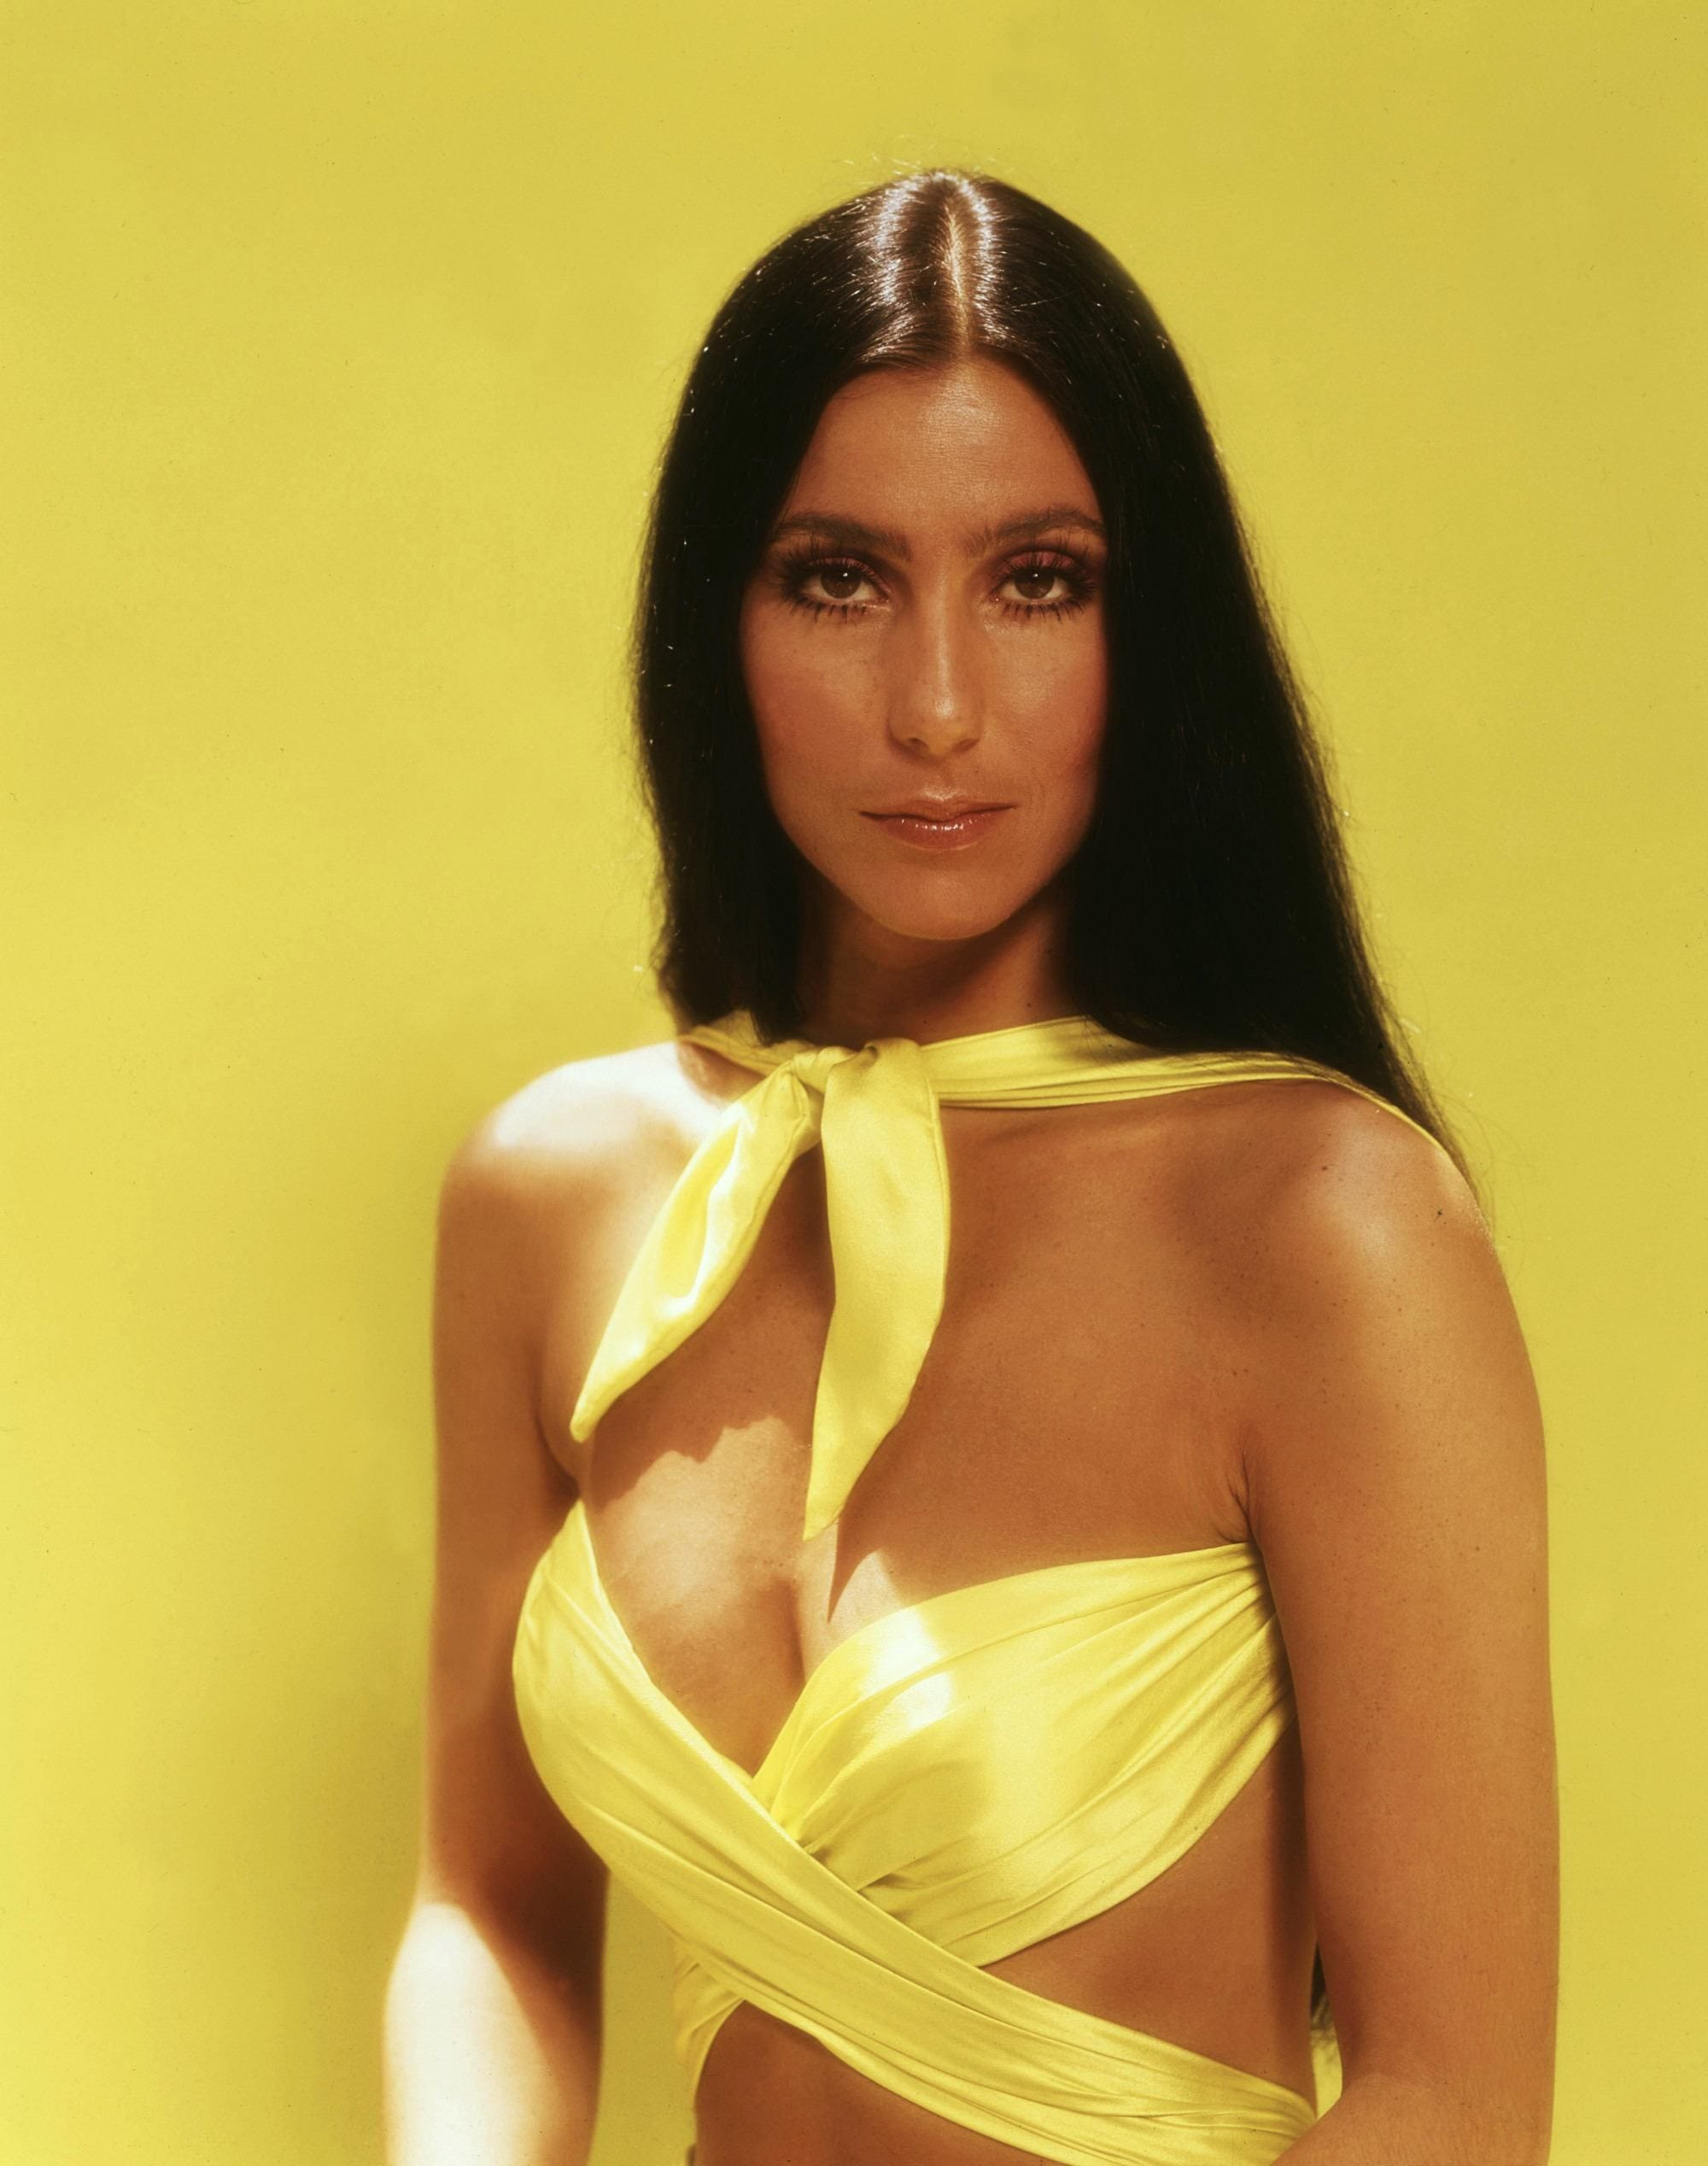 70s hairstyles: Cher with long dark brown glossy straight hair wearing a yellow cut out dress pictyred in front of a yellow backdrop